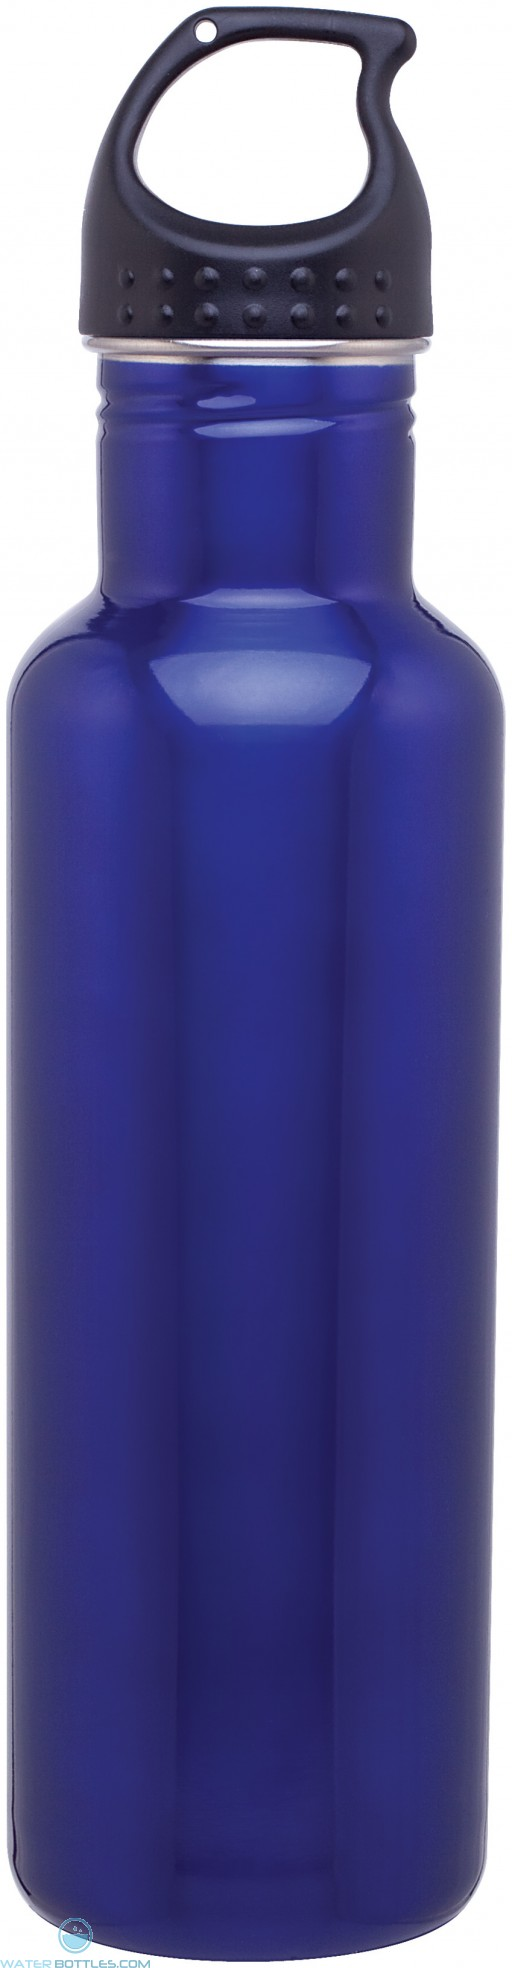 H2Go Stainless Steel Bolt | 24 oz - Blue